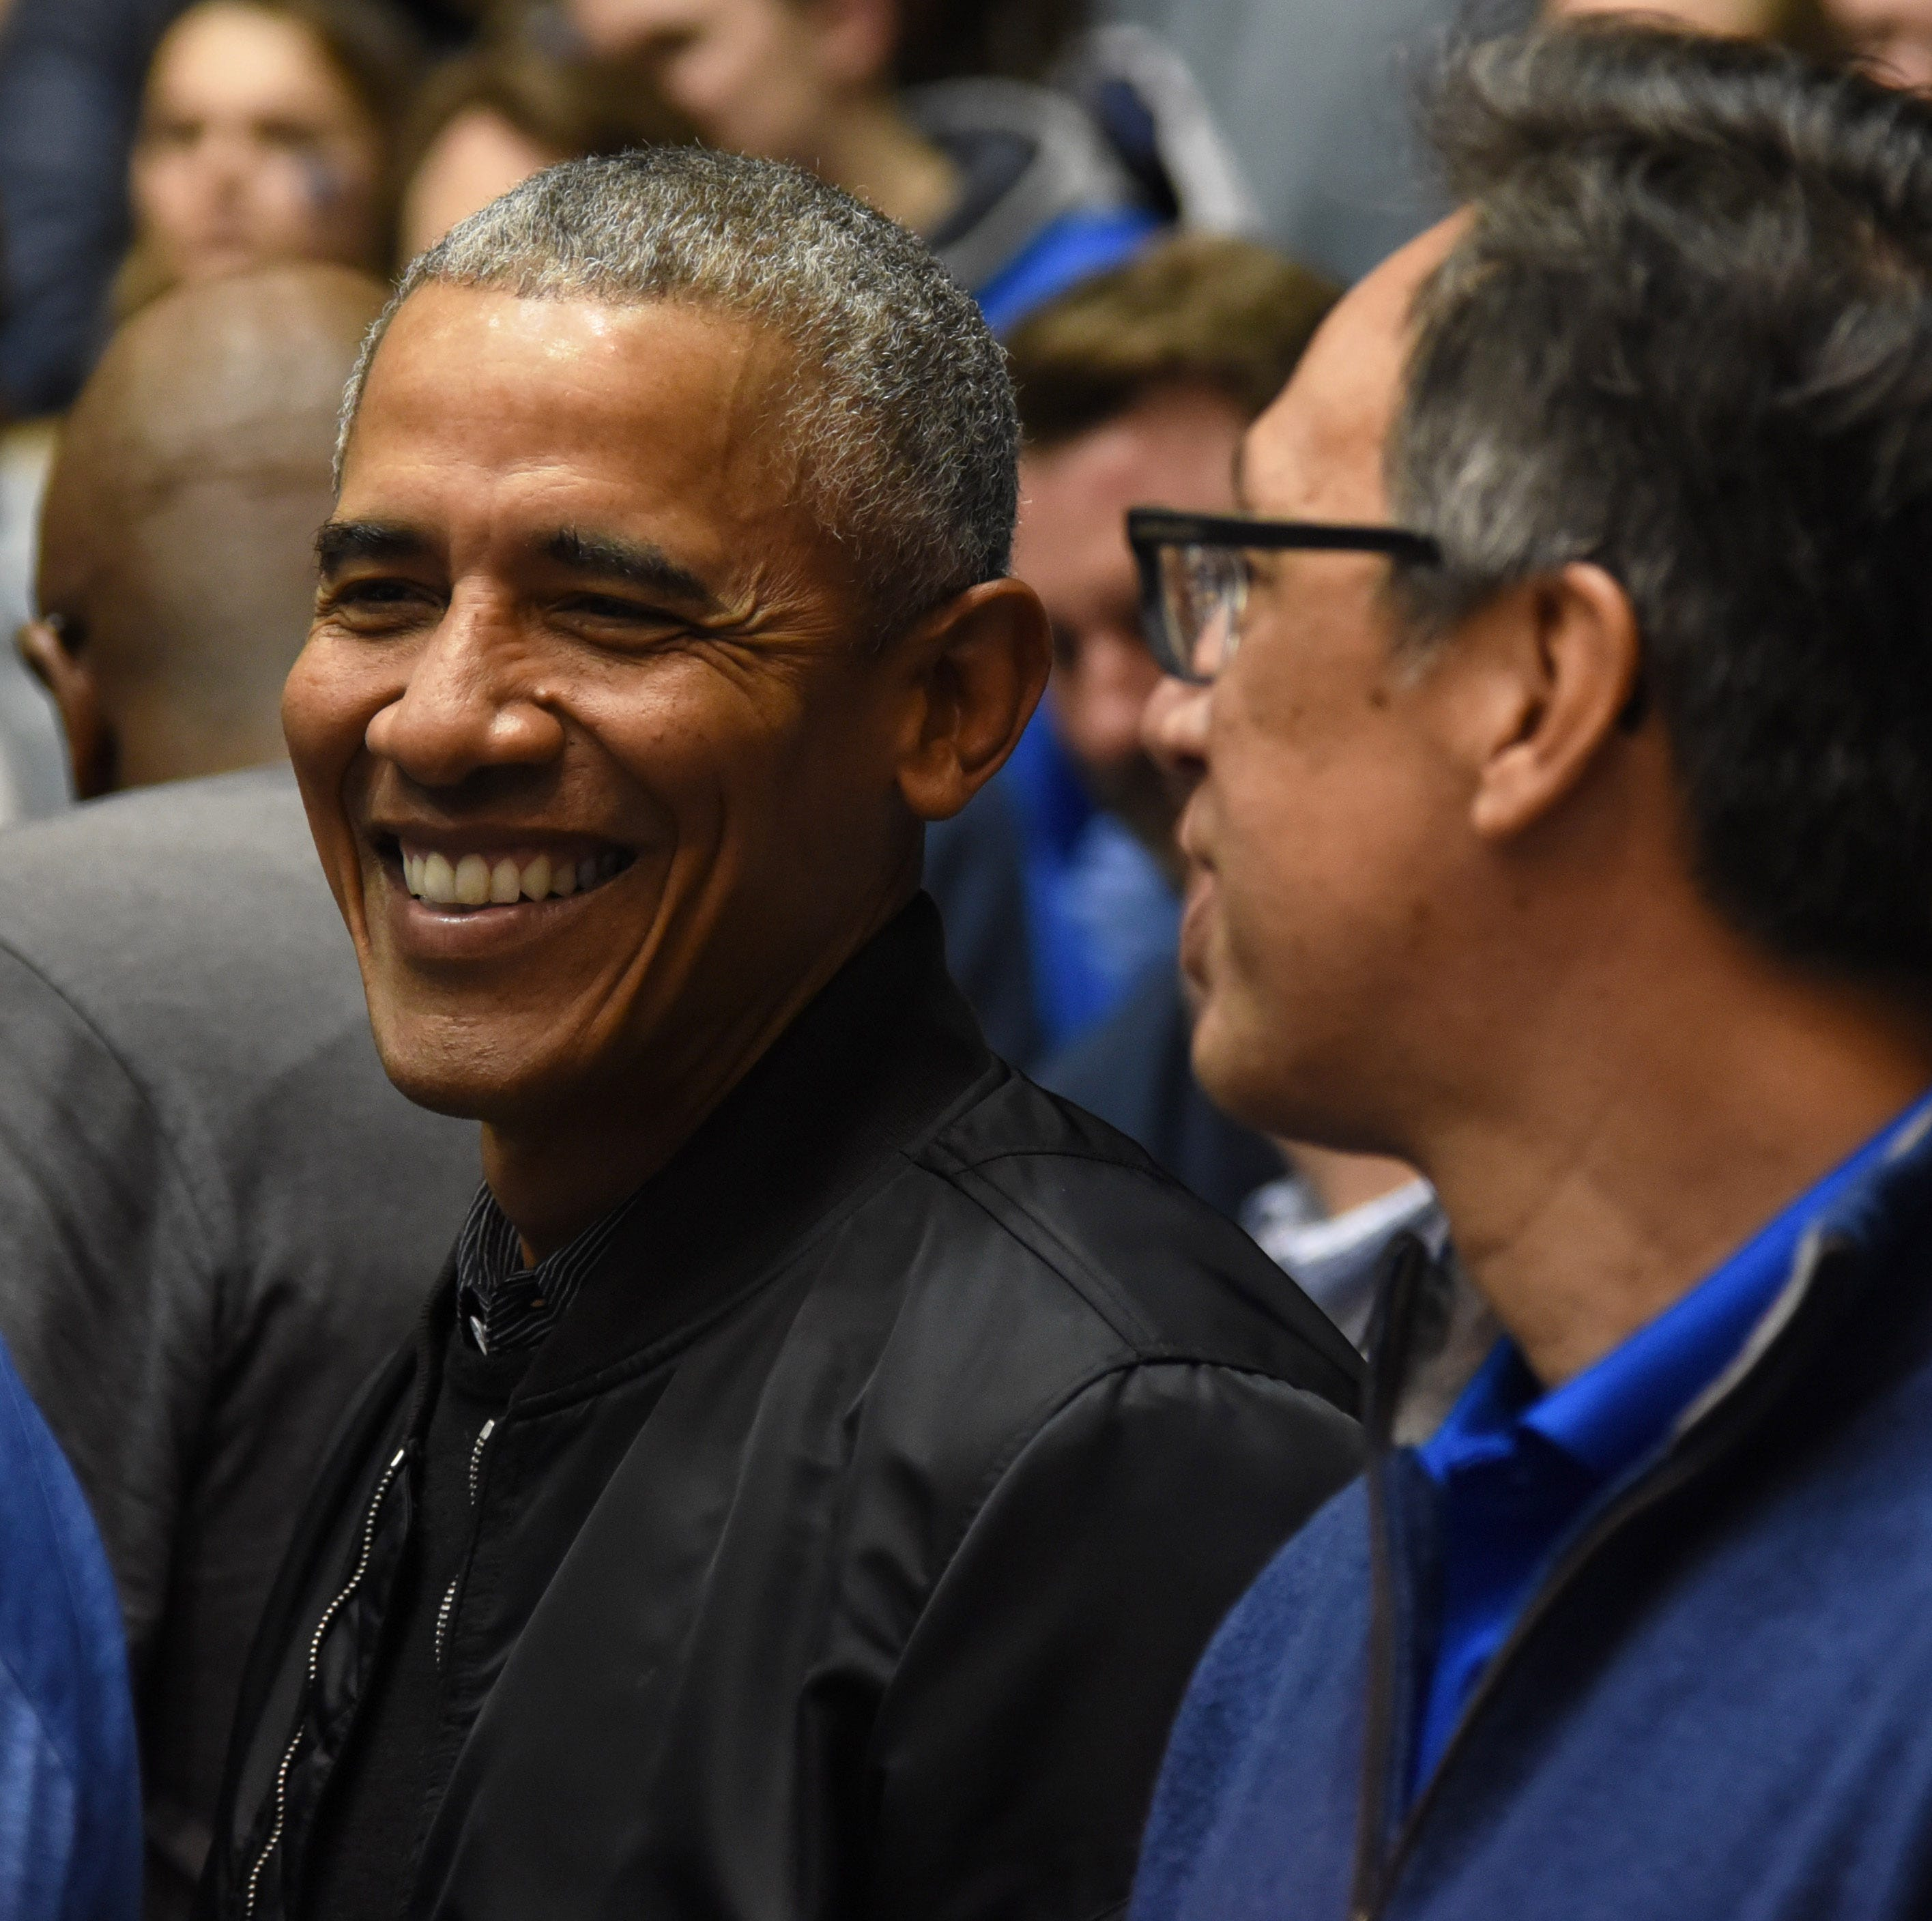 Former President Barack Obama attends Duke-North Carolina, wishes Zion Williamson well